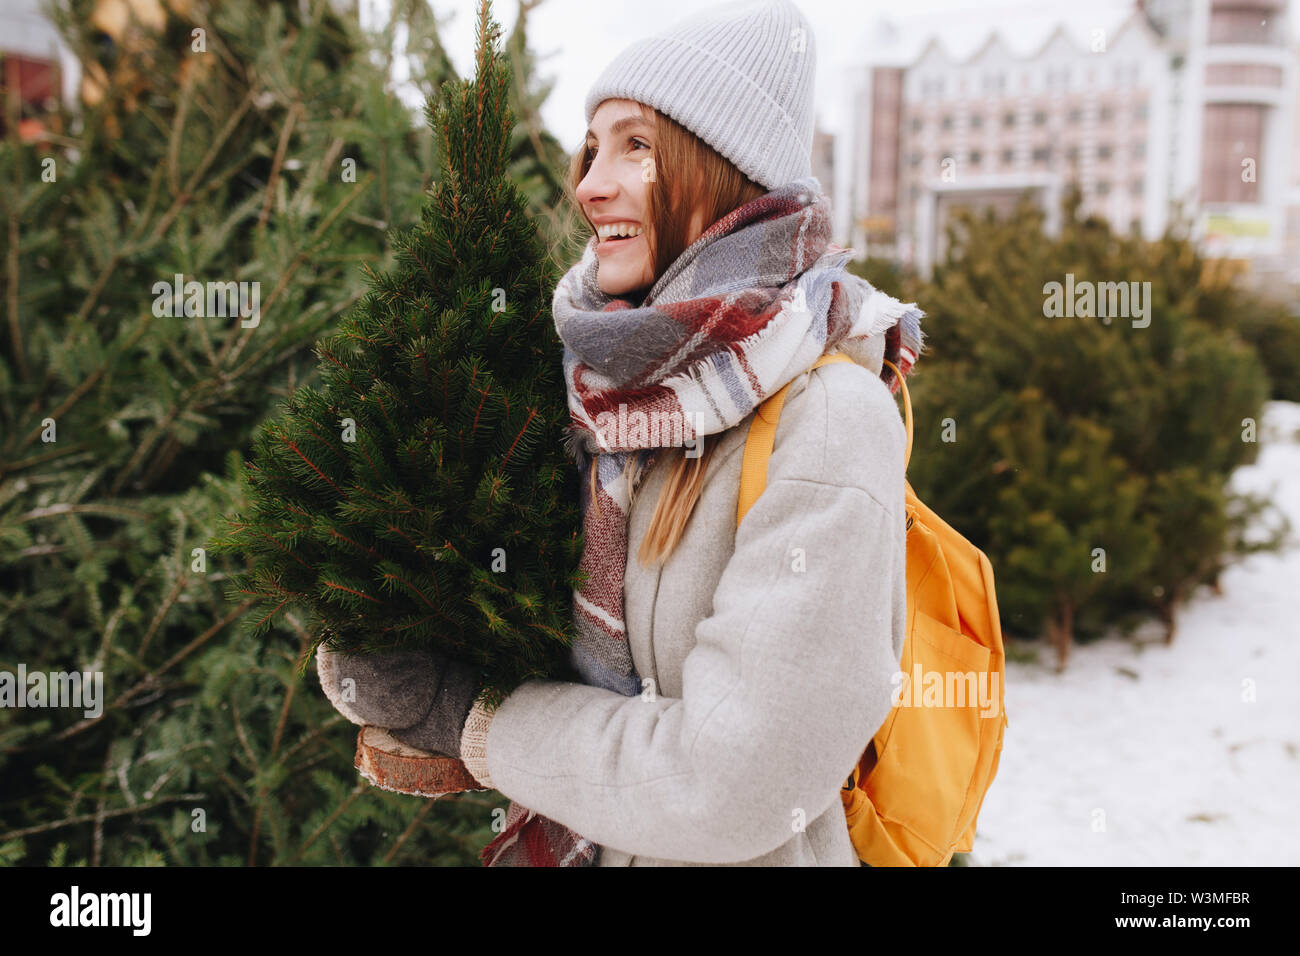 Young woman carrying small Christmas tree - Stock Image